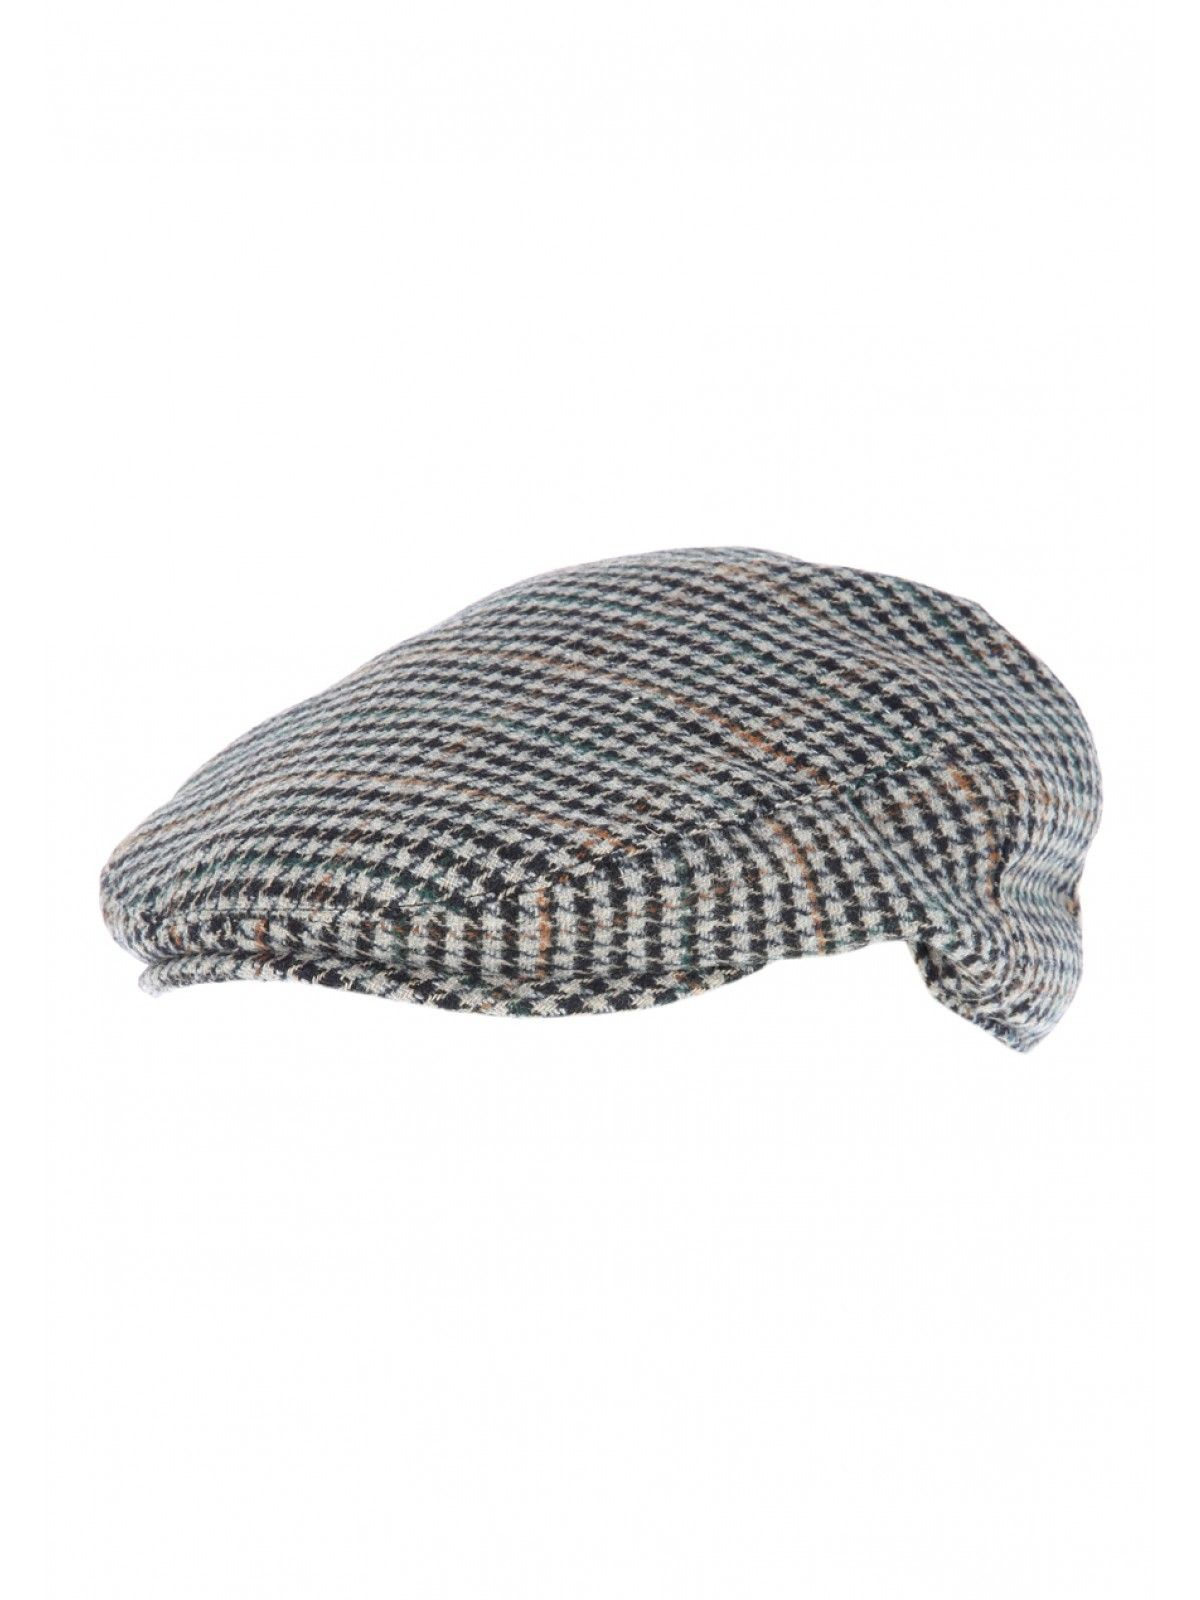 c1deb0c39 Mens Dogtooth Flat Cap | Peacocks | SS17 Client Product | Flat cap ...